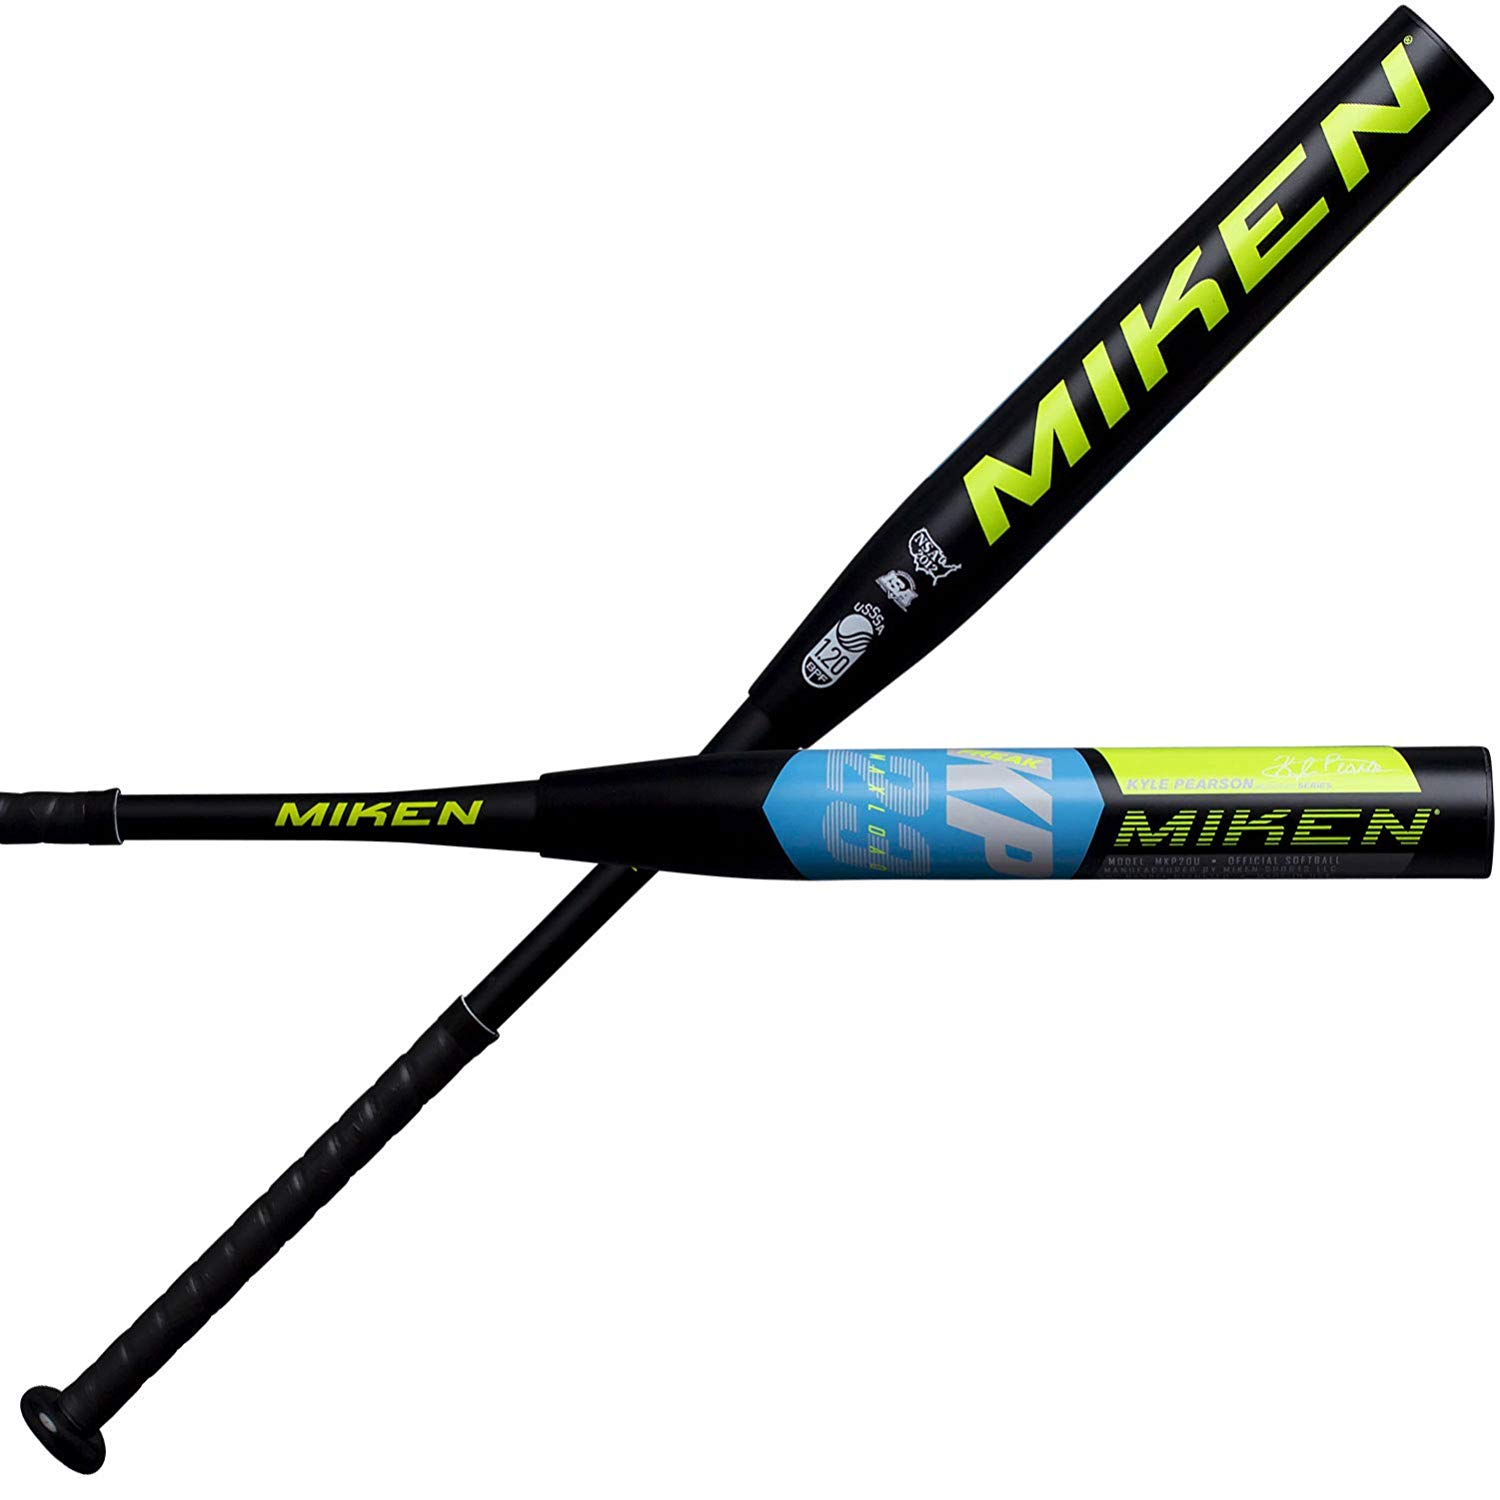 miken-2020-kyle-pearson-freak-23-maxload-usssa-slow-pitch-softball-bat-34-inch-27-oz MKP20U-3-27  658925042904 DESIGNED FOR ADULTS PLAYING RECREATIONAL AND COMPETITIVE SLOWPITCH SOFTBALL this Miken